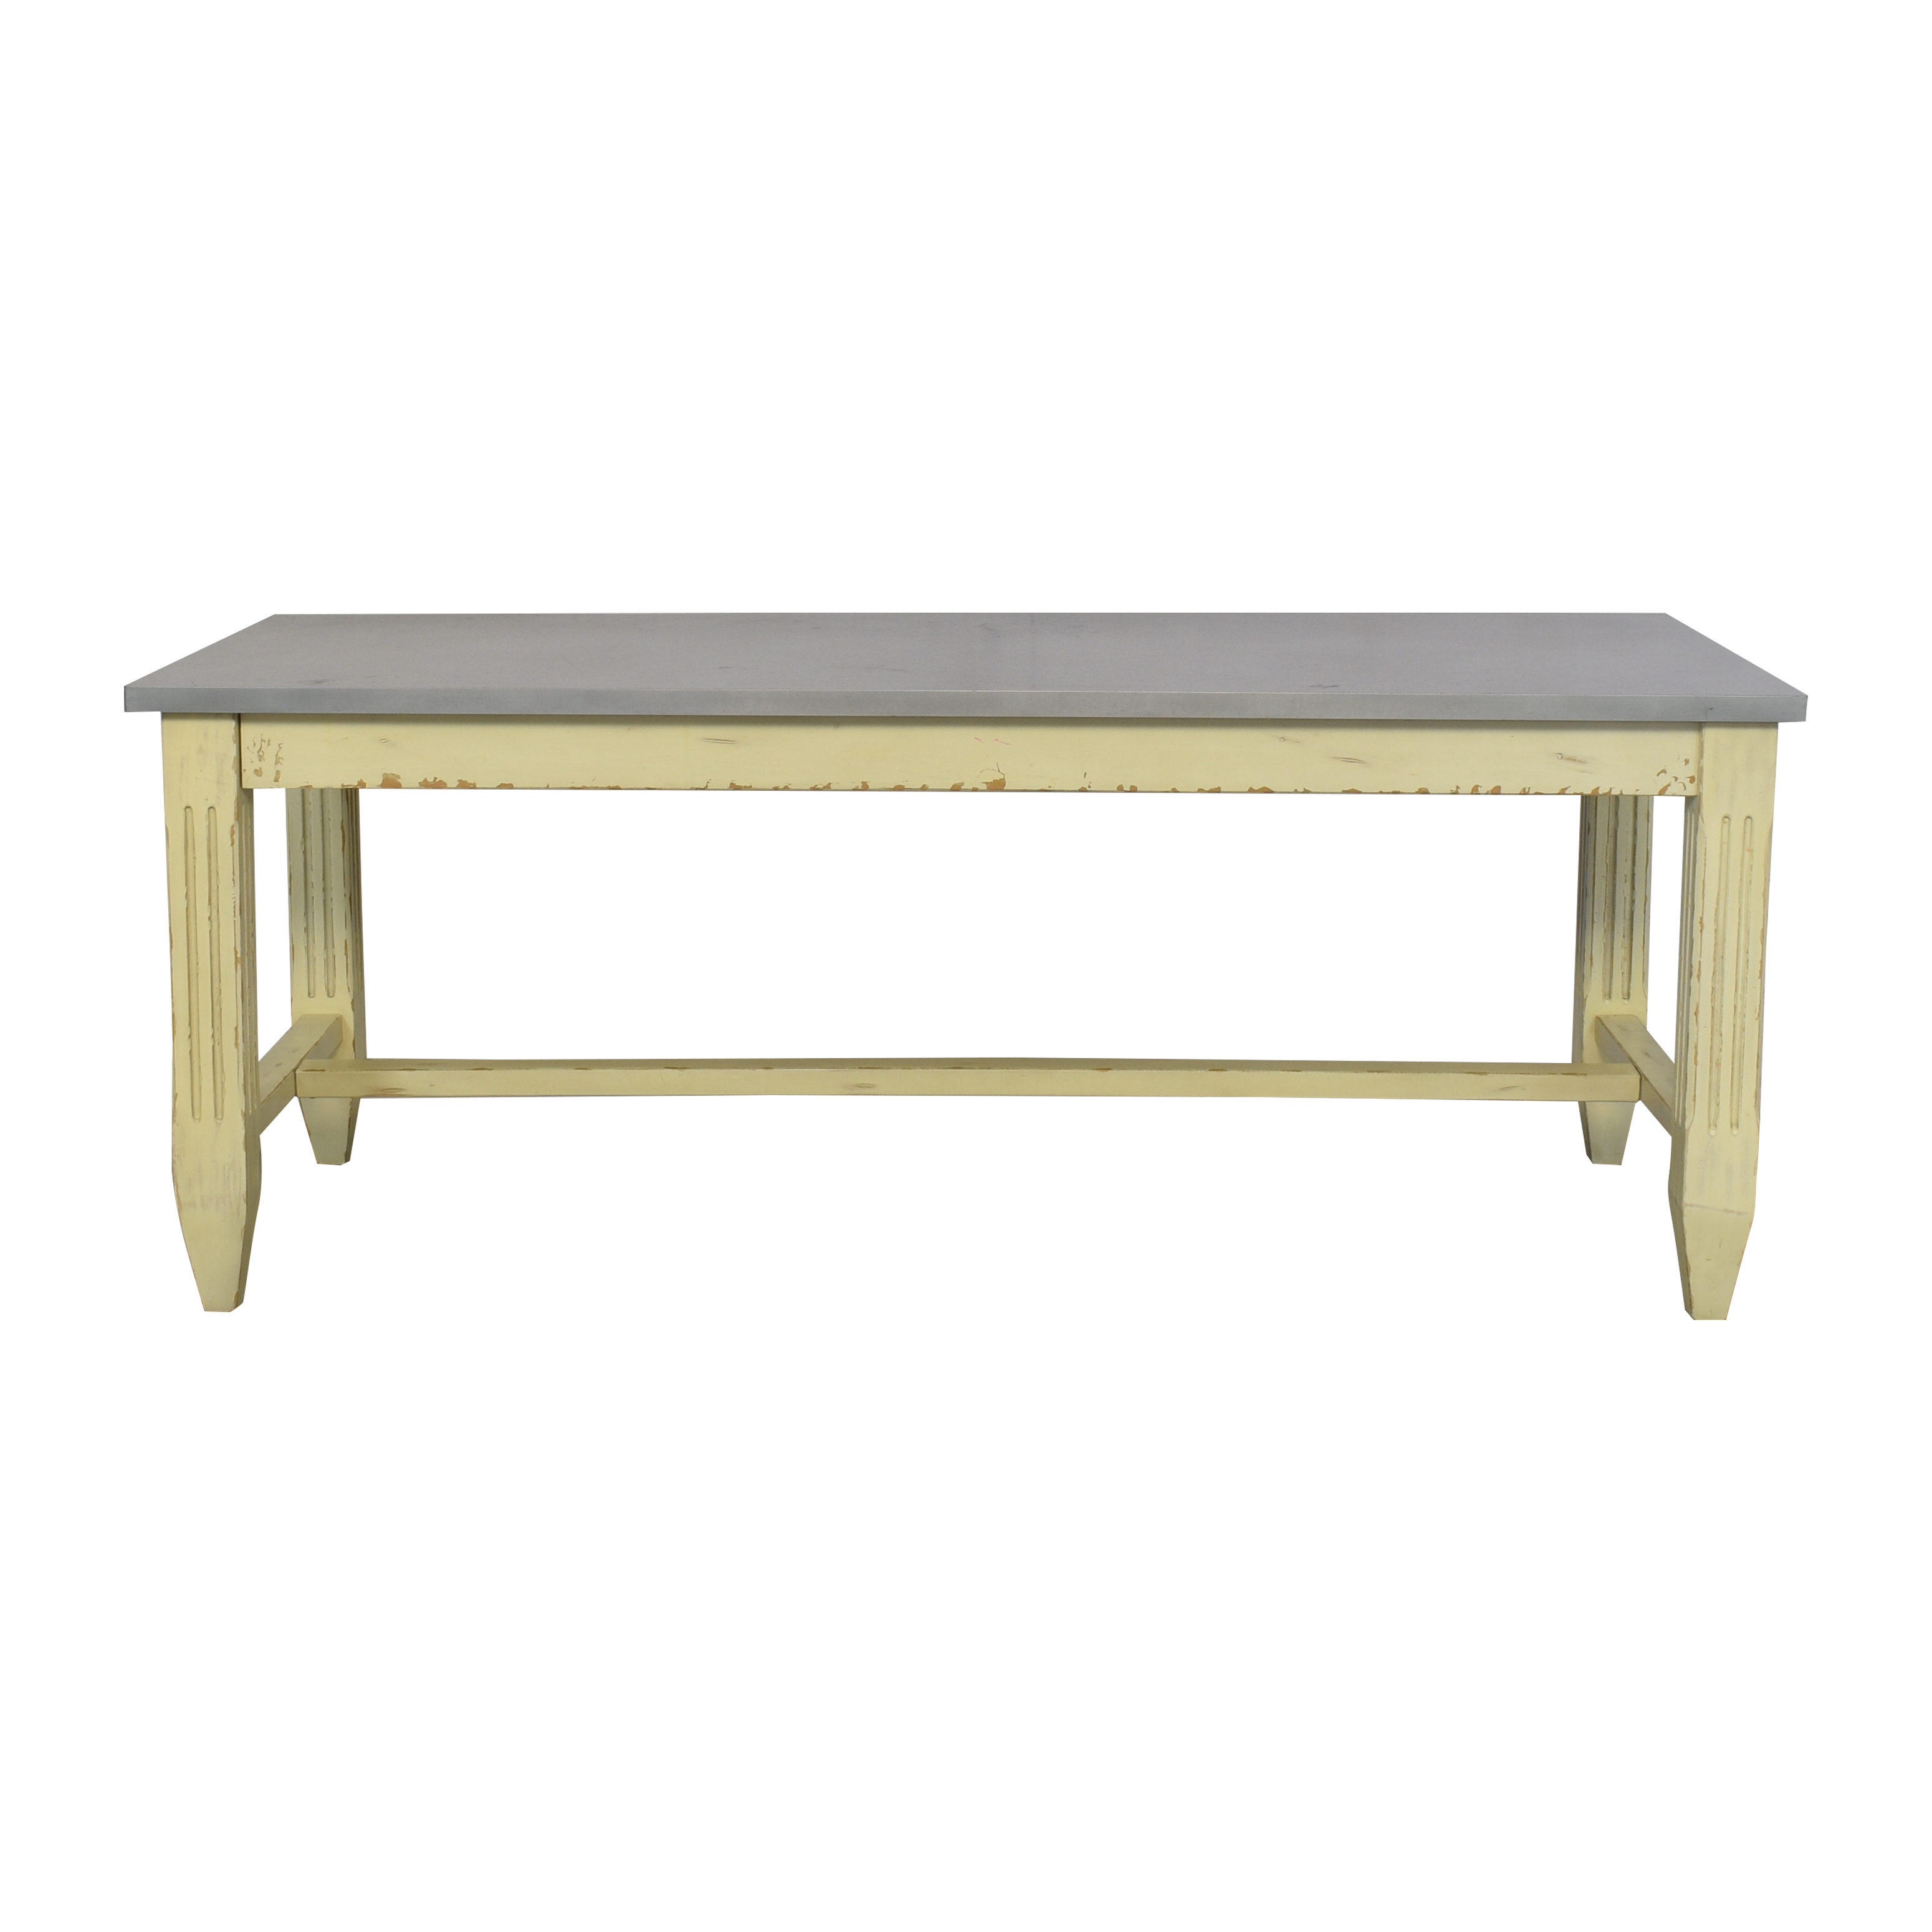 shop Ballard Designs Ballard Designs Messina Dining Table online